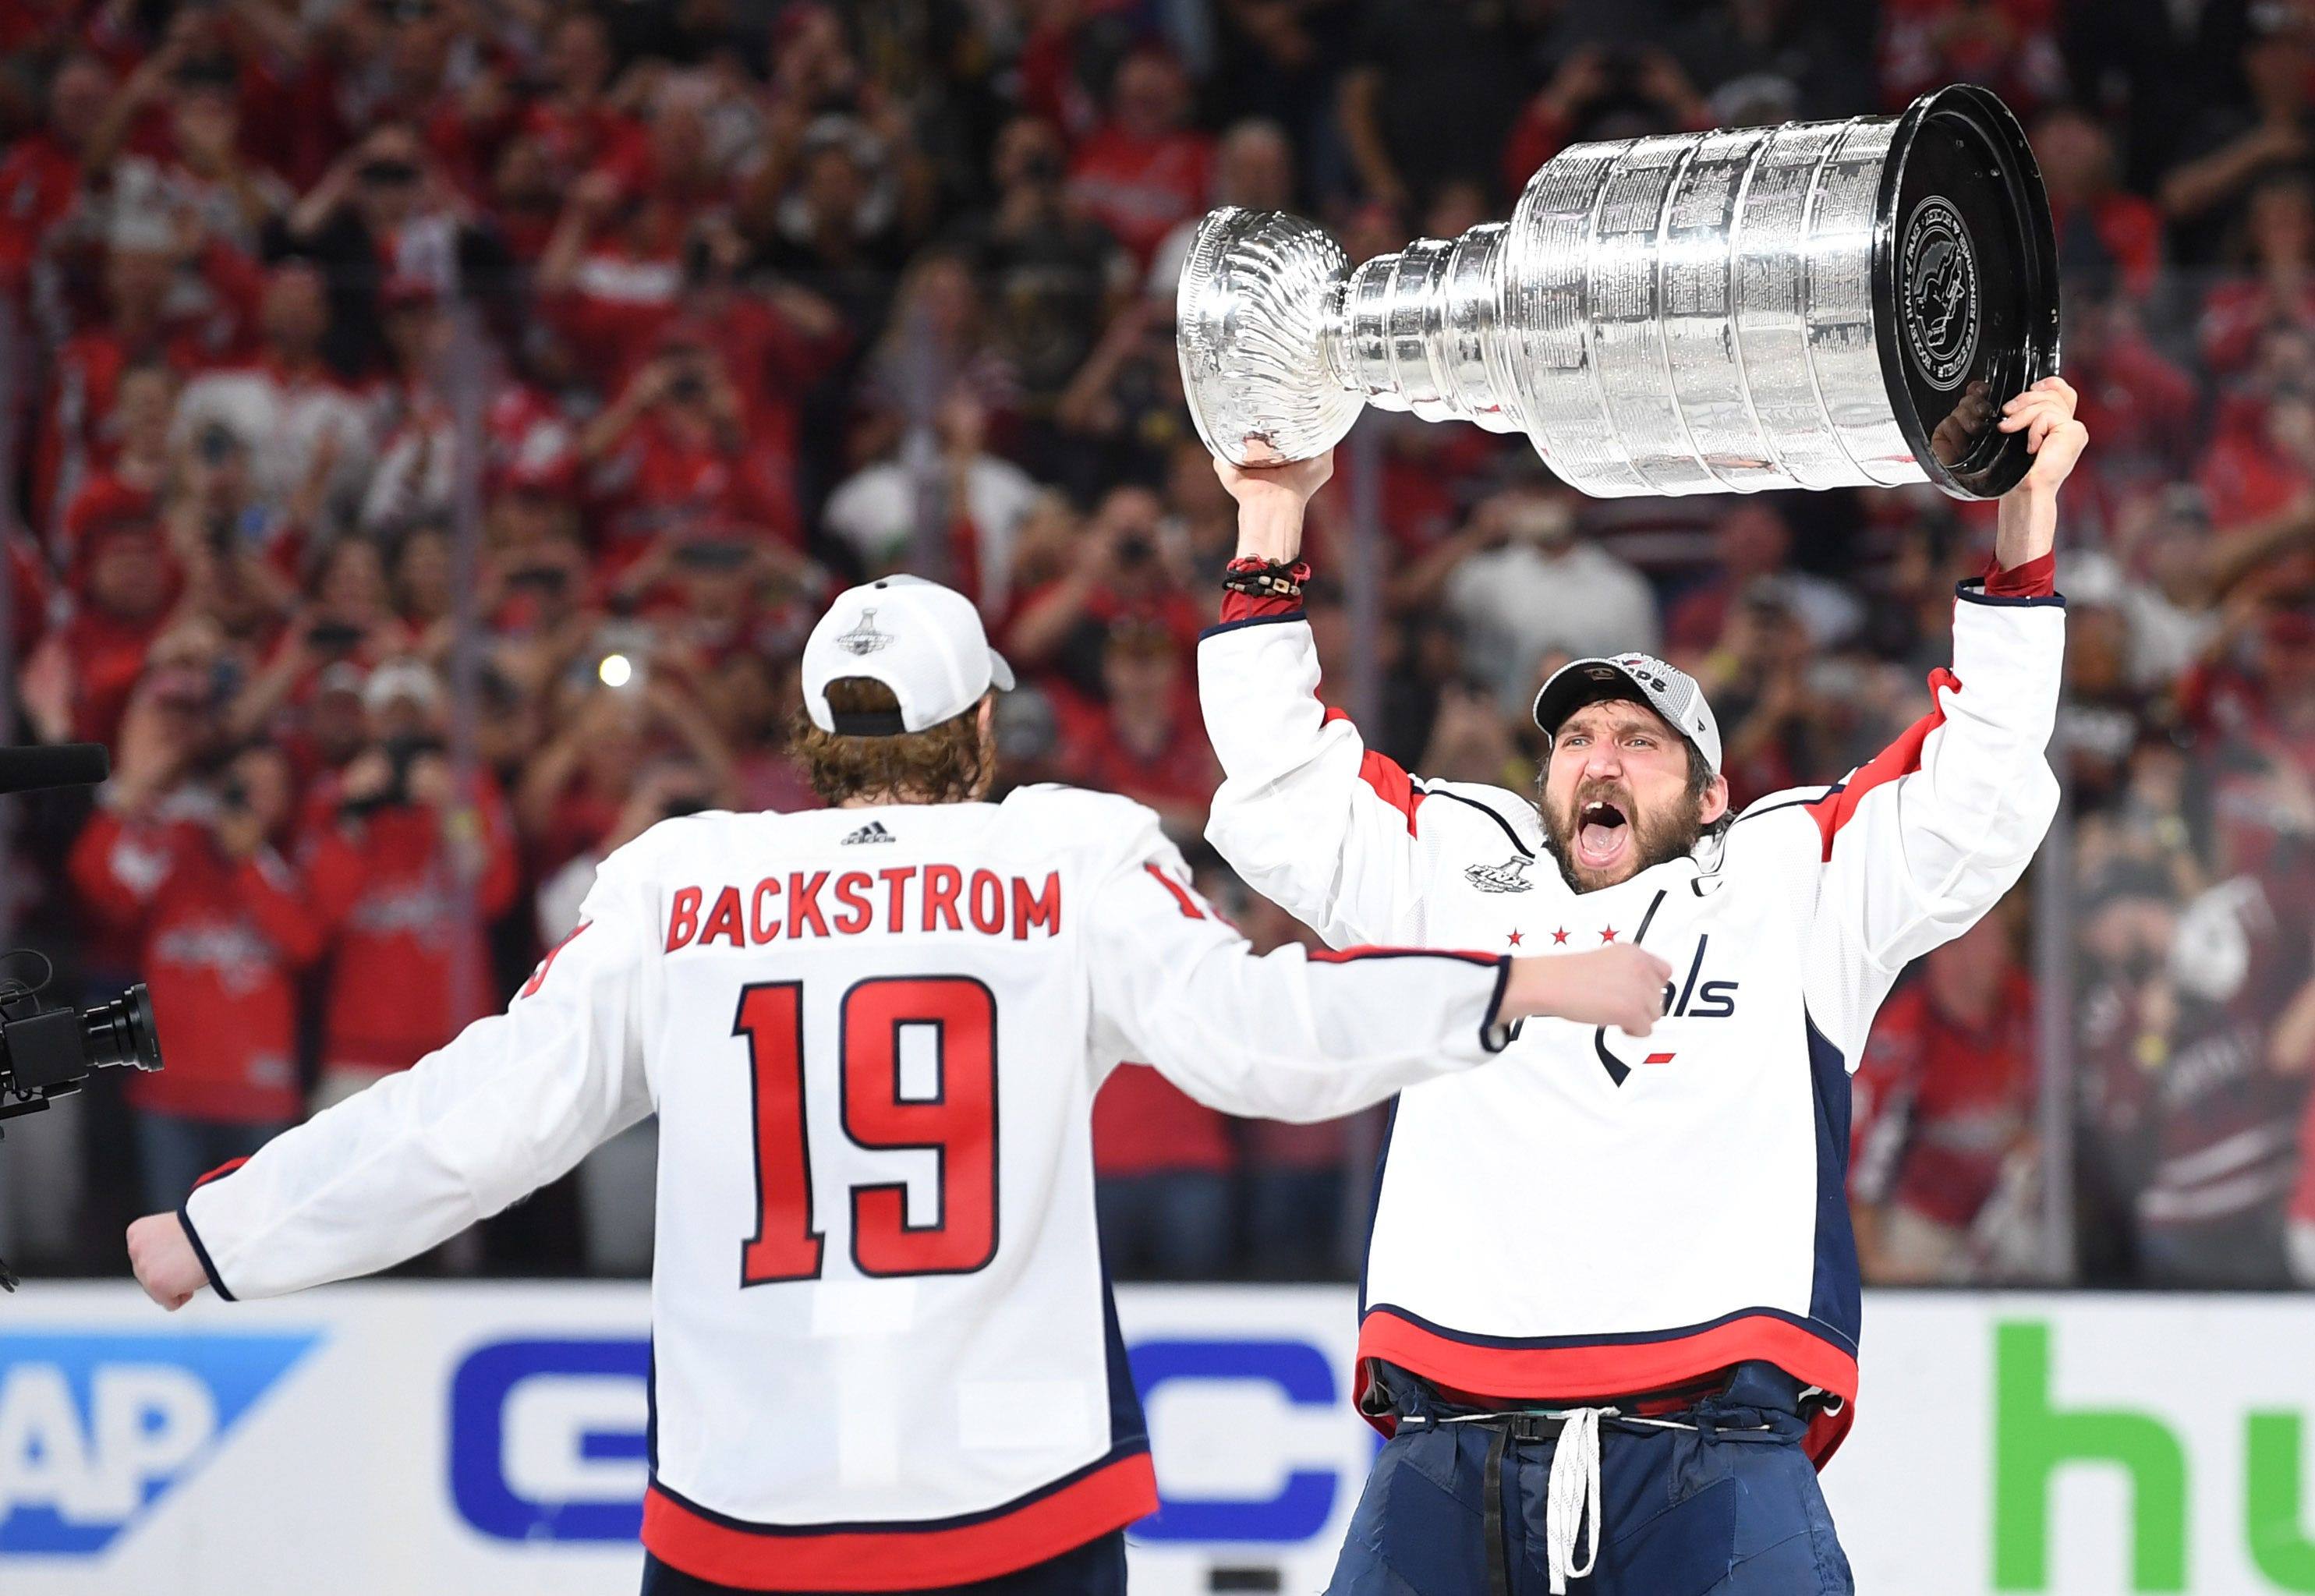 9e078423134 636640880522867533-USP-NHL-Stanley-Cup-Final-Washington-Capitals -at-100451133.JPG